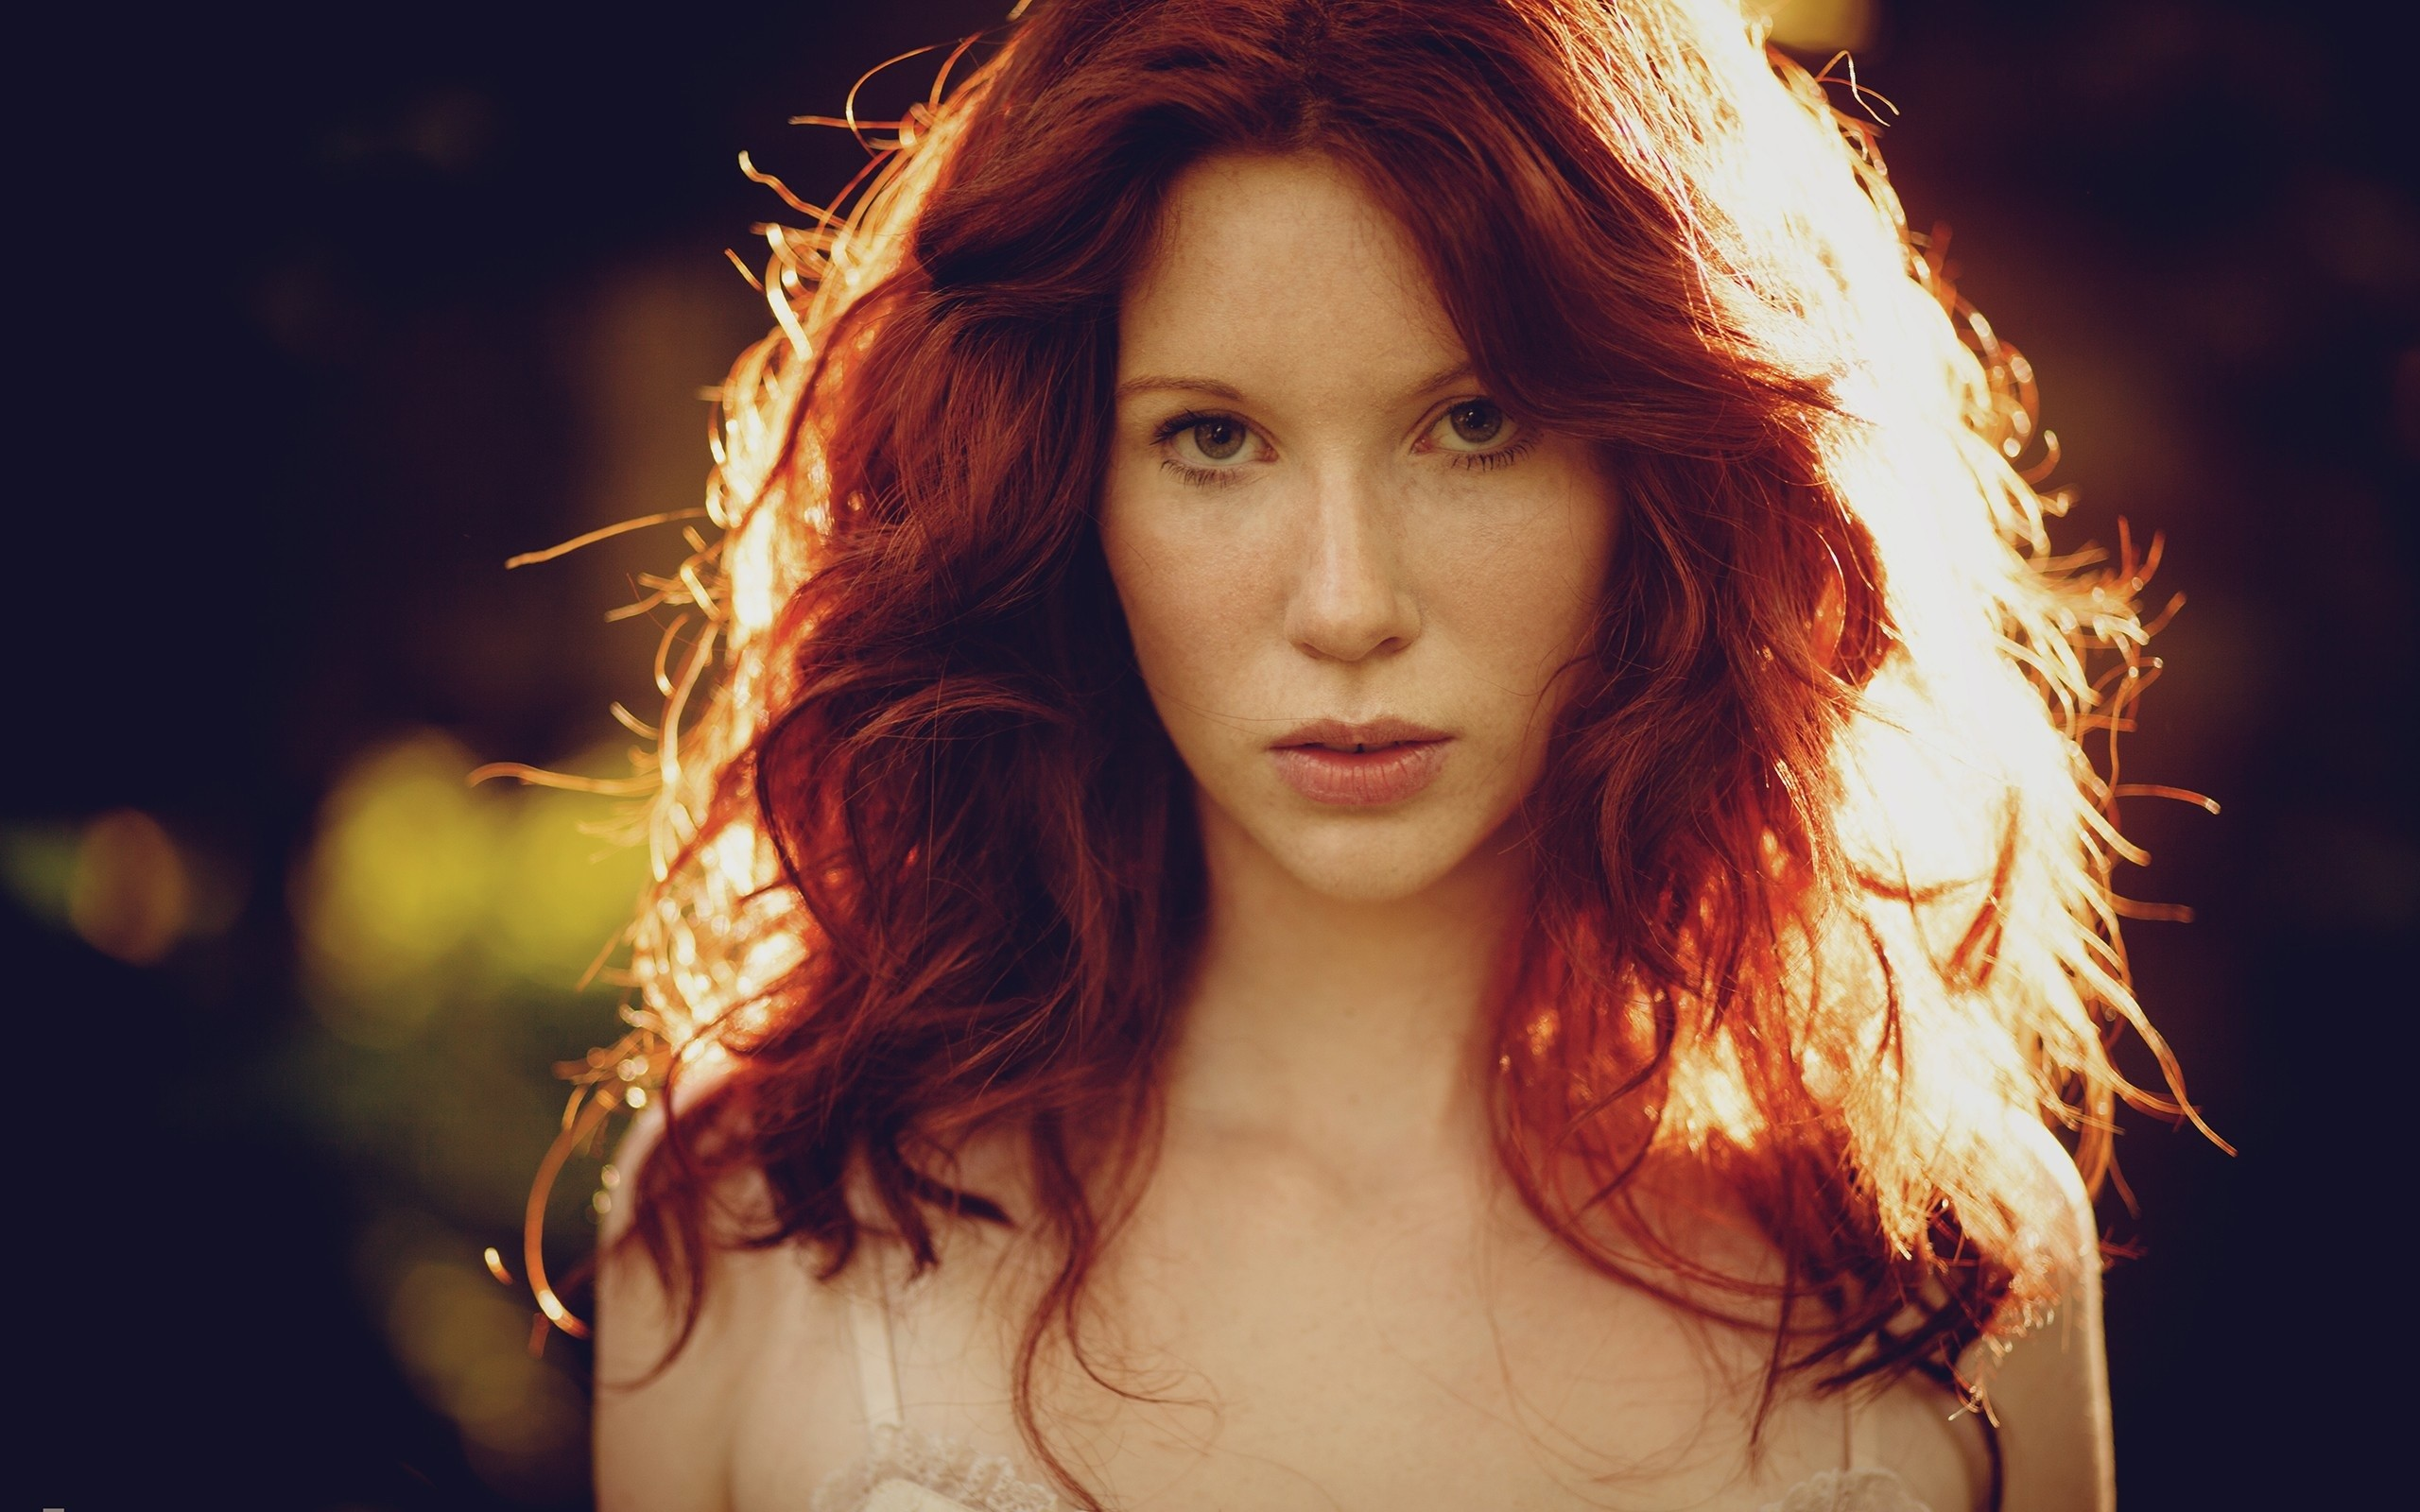 Res: 2560x1600, Image: Pretty Redhead Hair in Sunlight wallpapers and stock photos. Â«